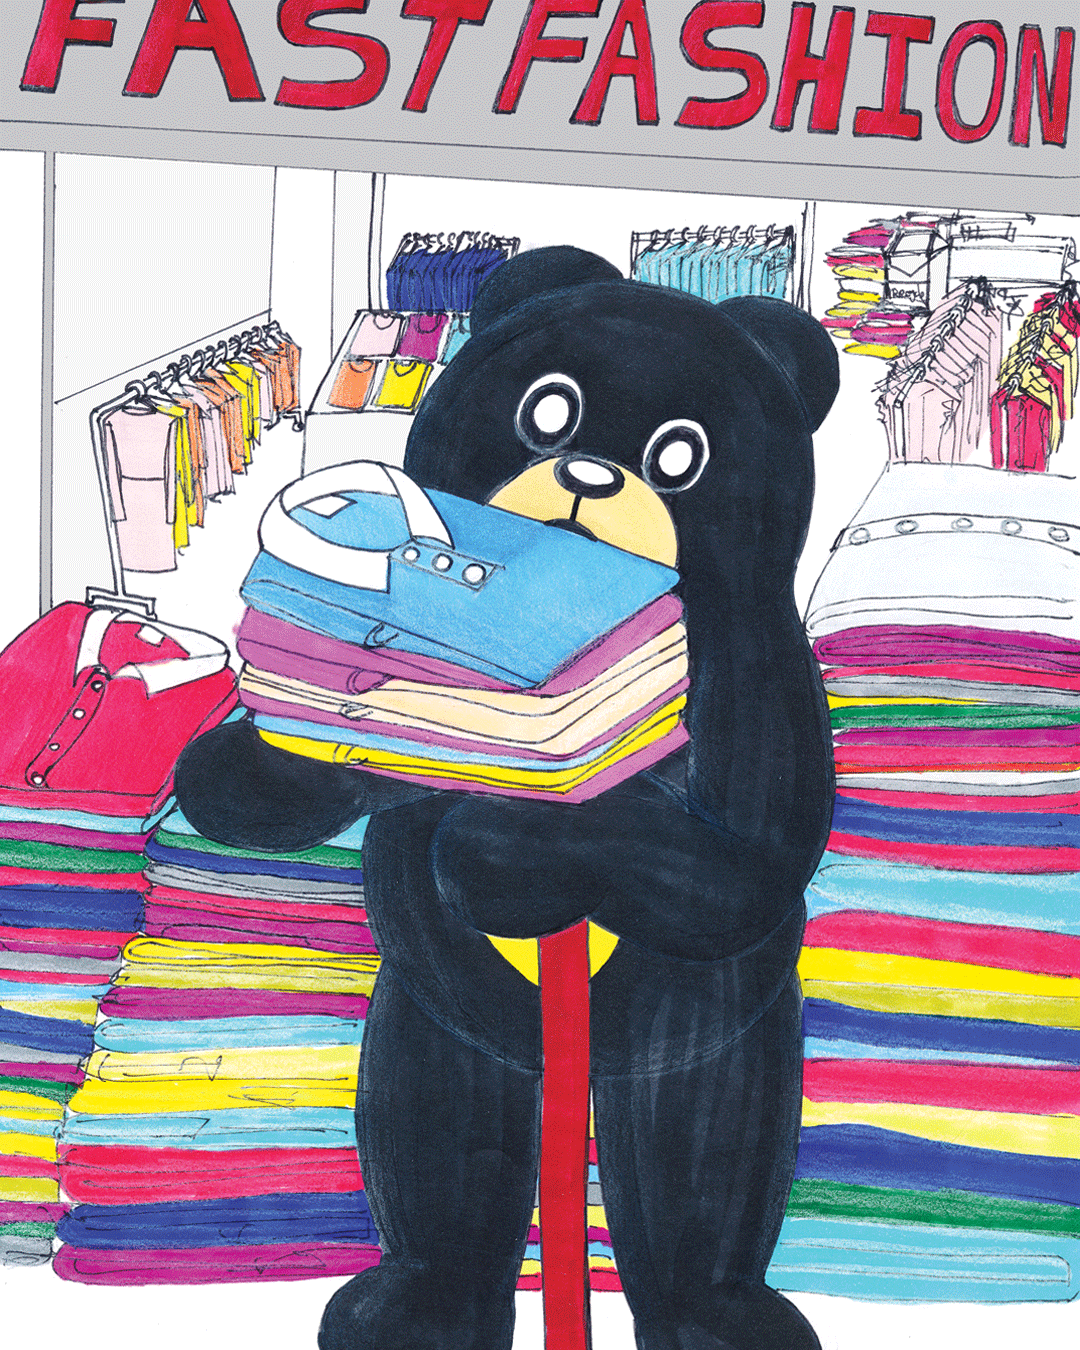 Sunbear Addresses Fast Fashion…   REFERENCE:  Liu, M. 2019, Sunbear Addresses Fast Fashion…theconversation.com, weblog, viewed 3 September 2019, < http://www.drmarkliu.com/sunbear >